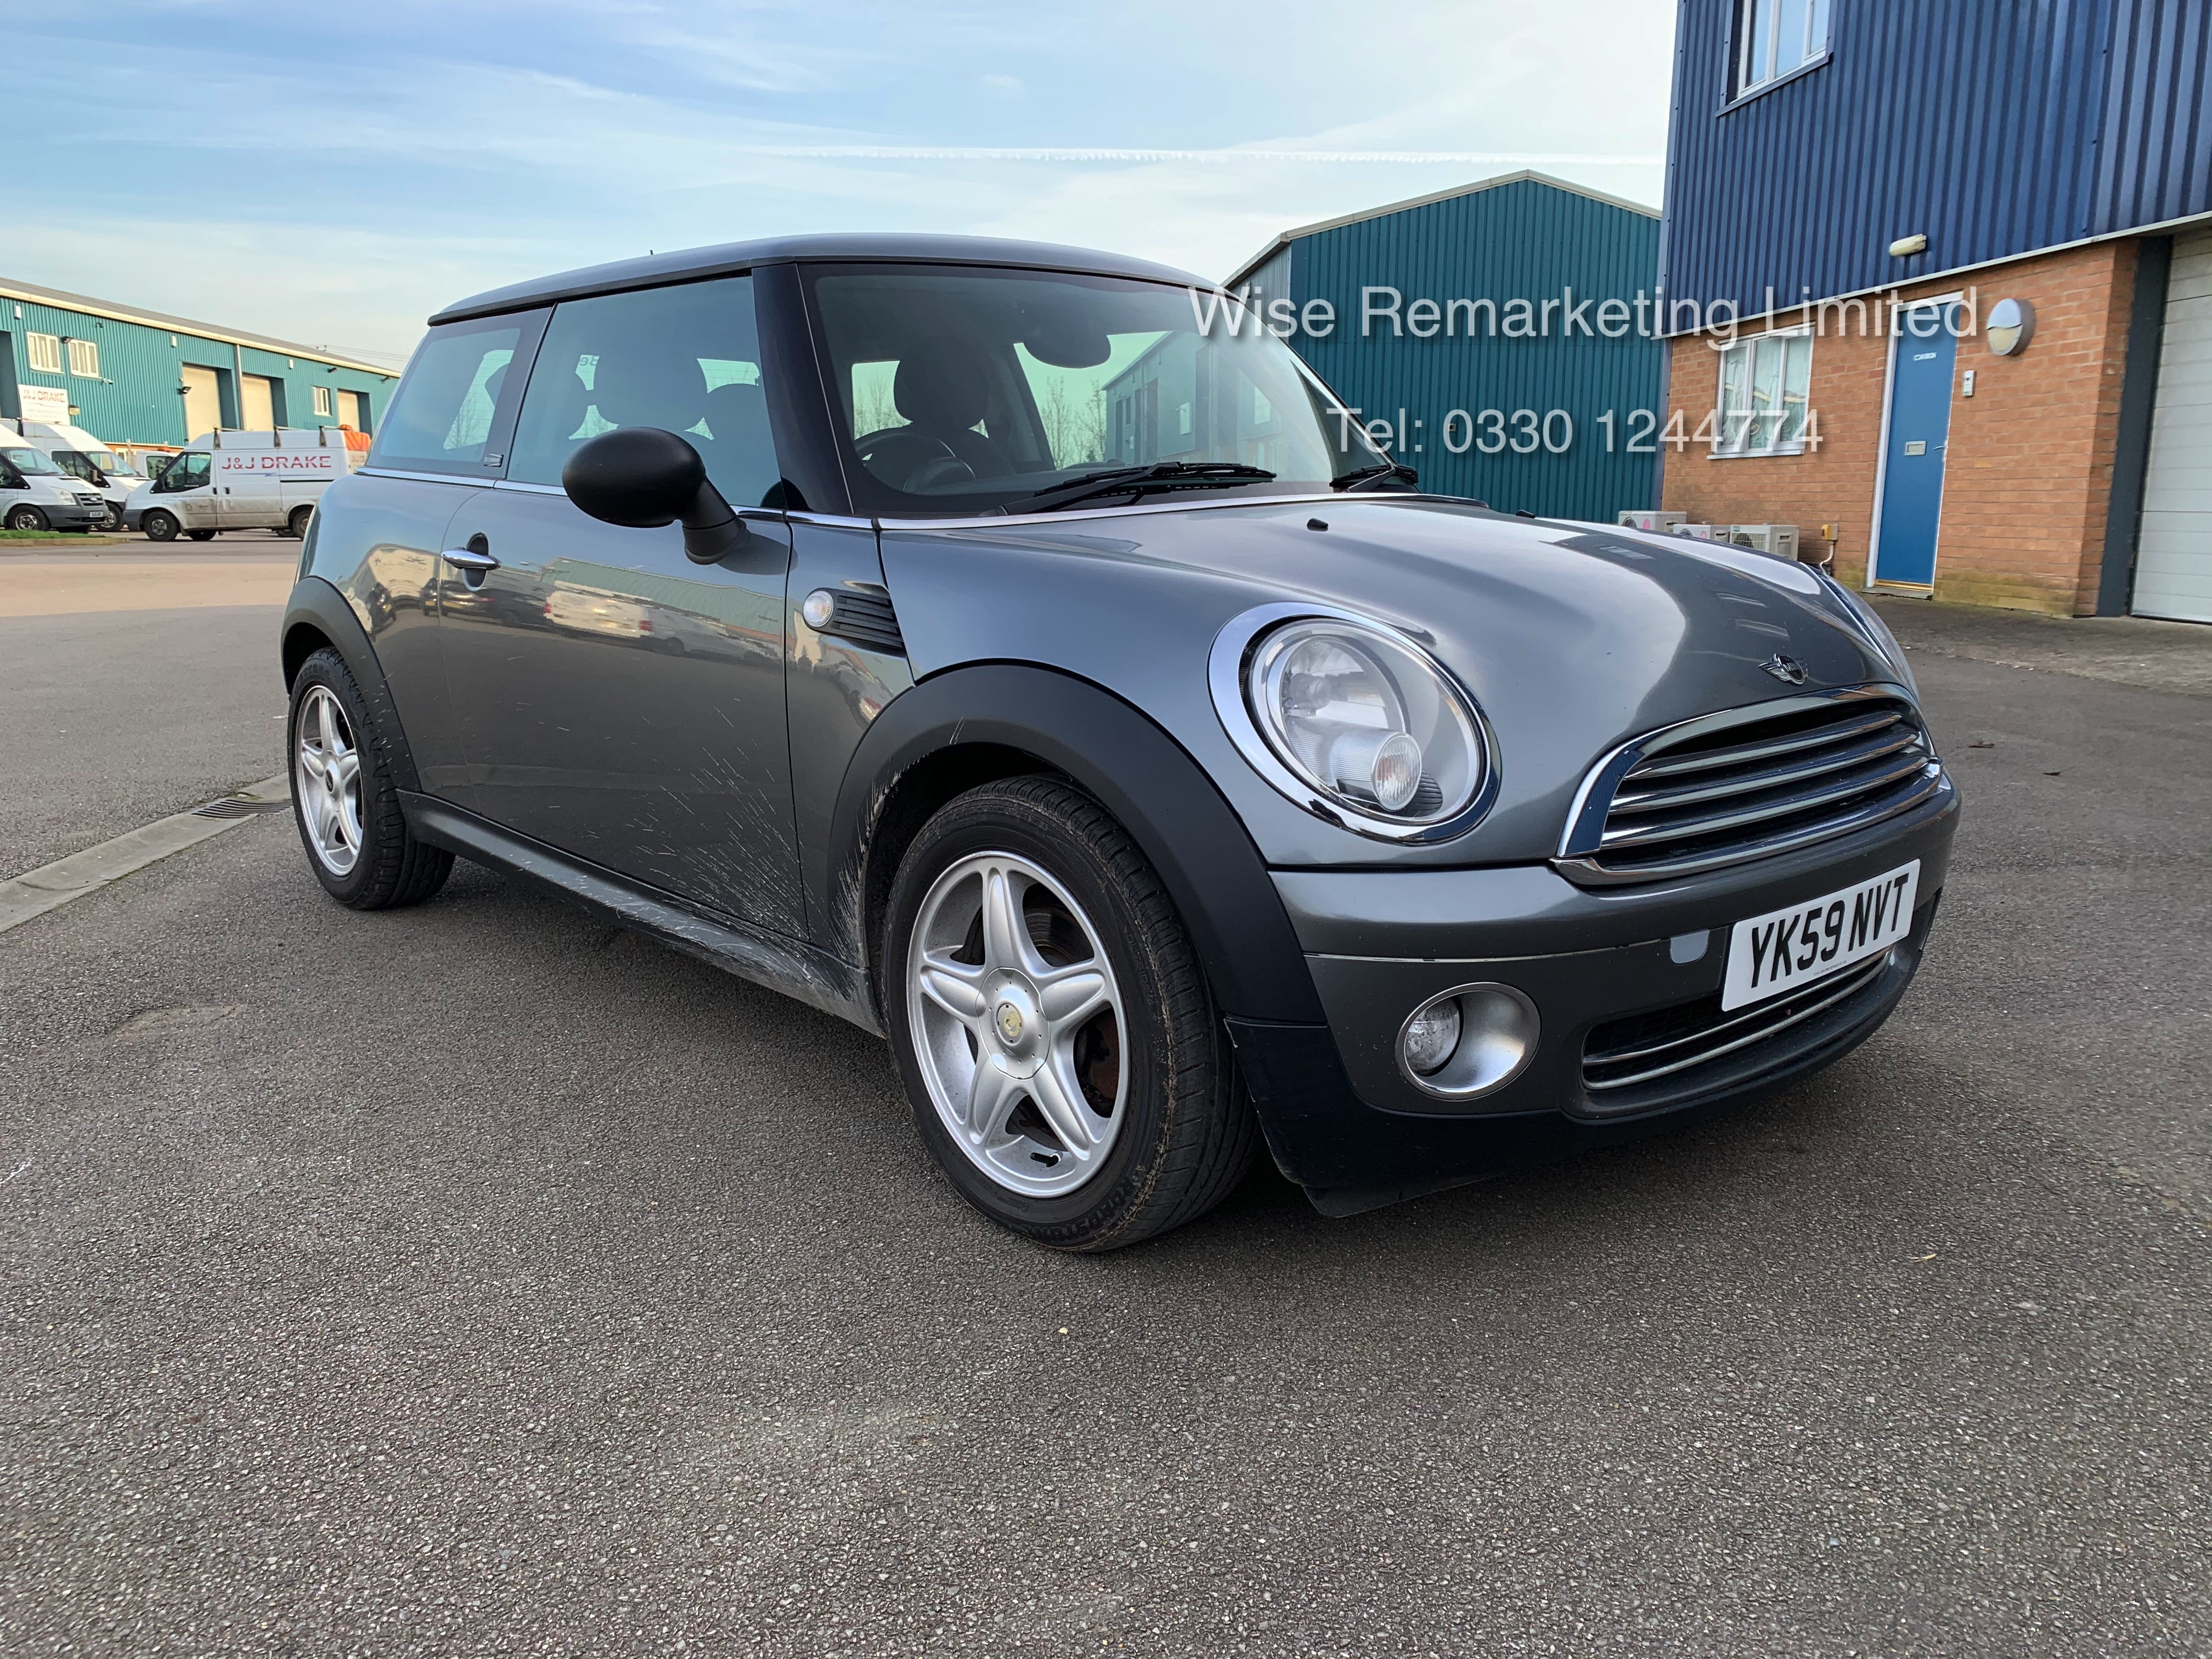 (RESERVE MET) Mini One Graphite 1.4 Petrol - 2010 Model - Service History - 6 Speed - Air Con -